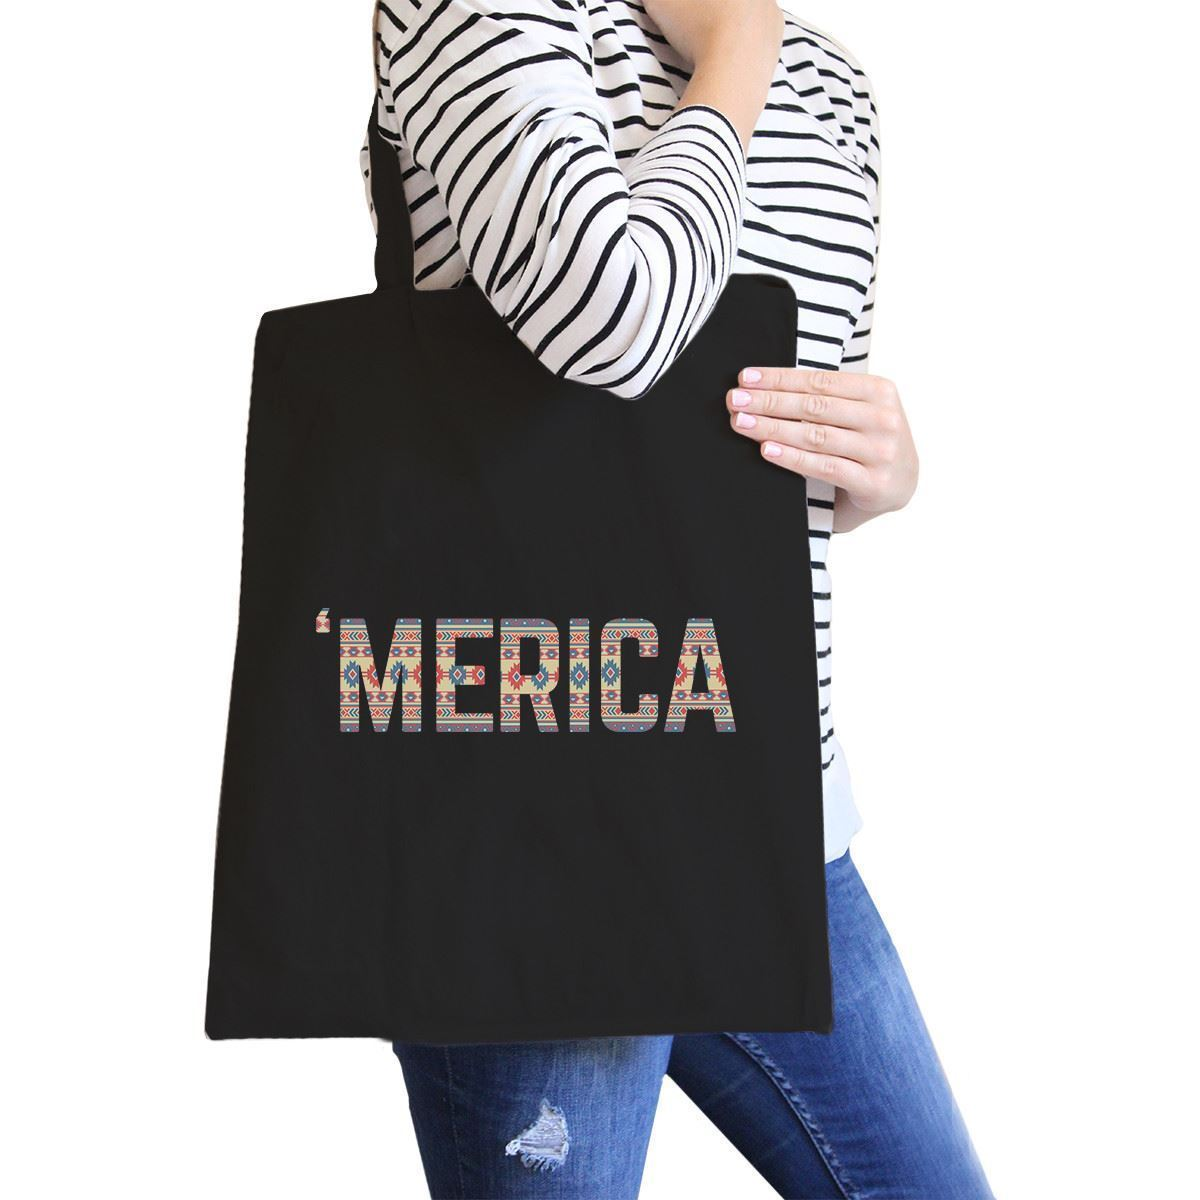 Primary image for With 'merica Black Canvas Bag Tribal Pattern America Lettering Bag